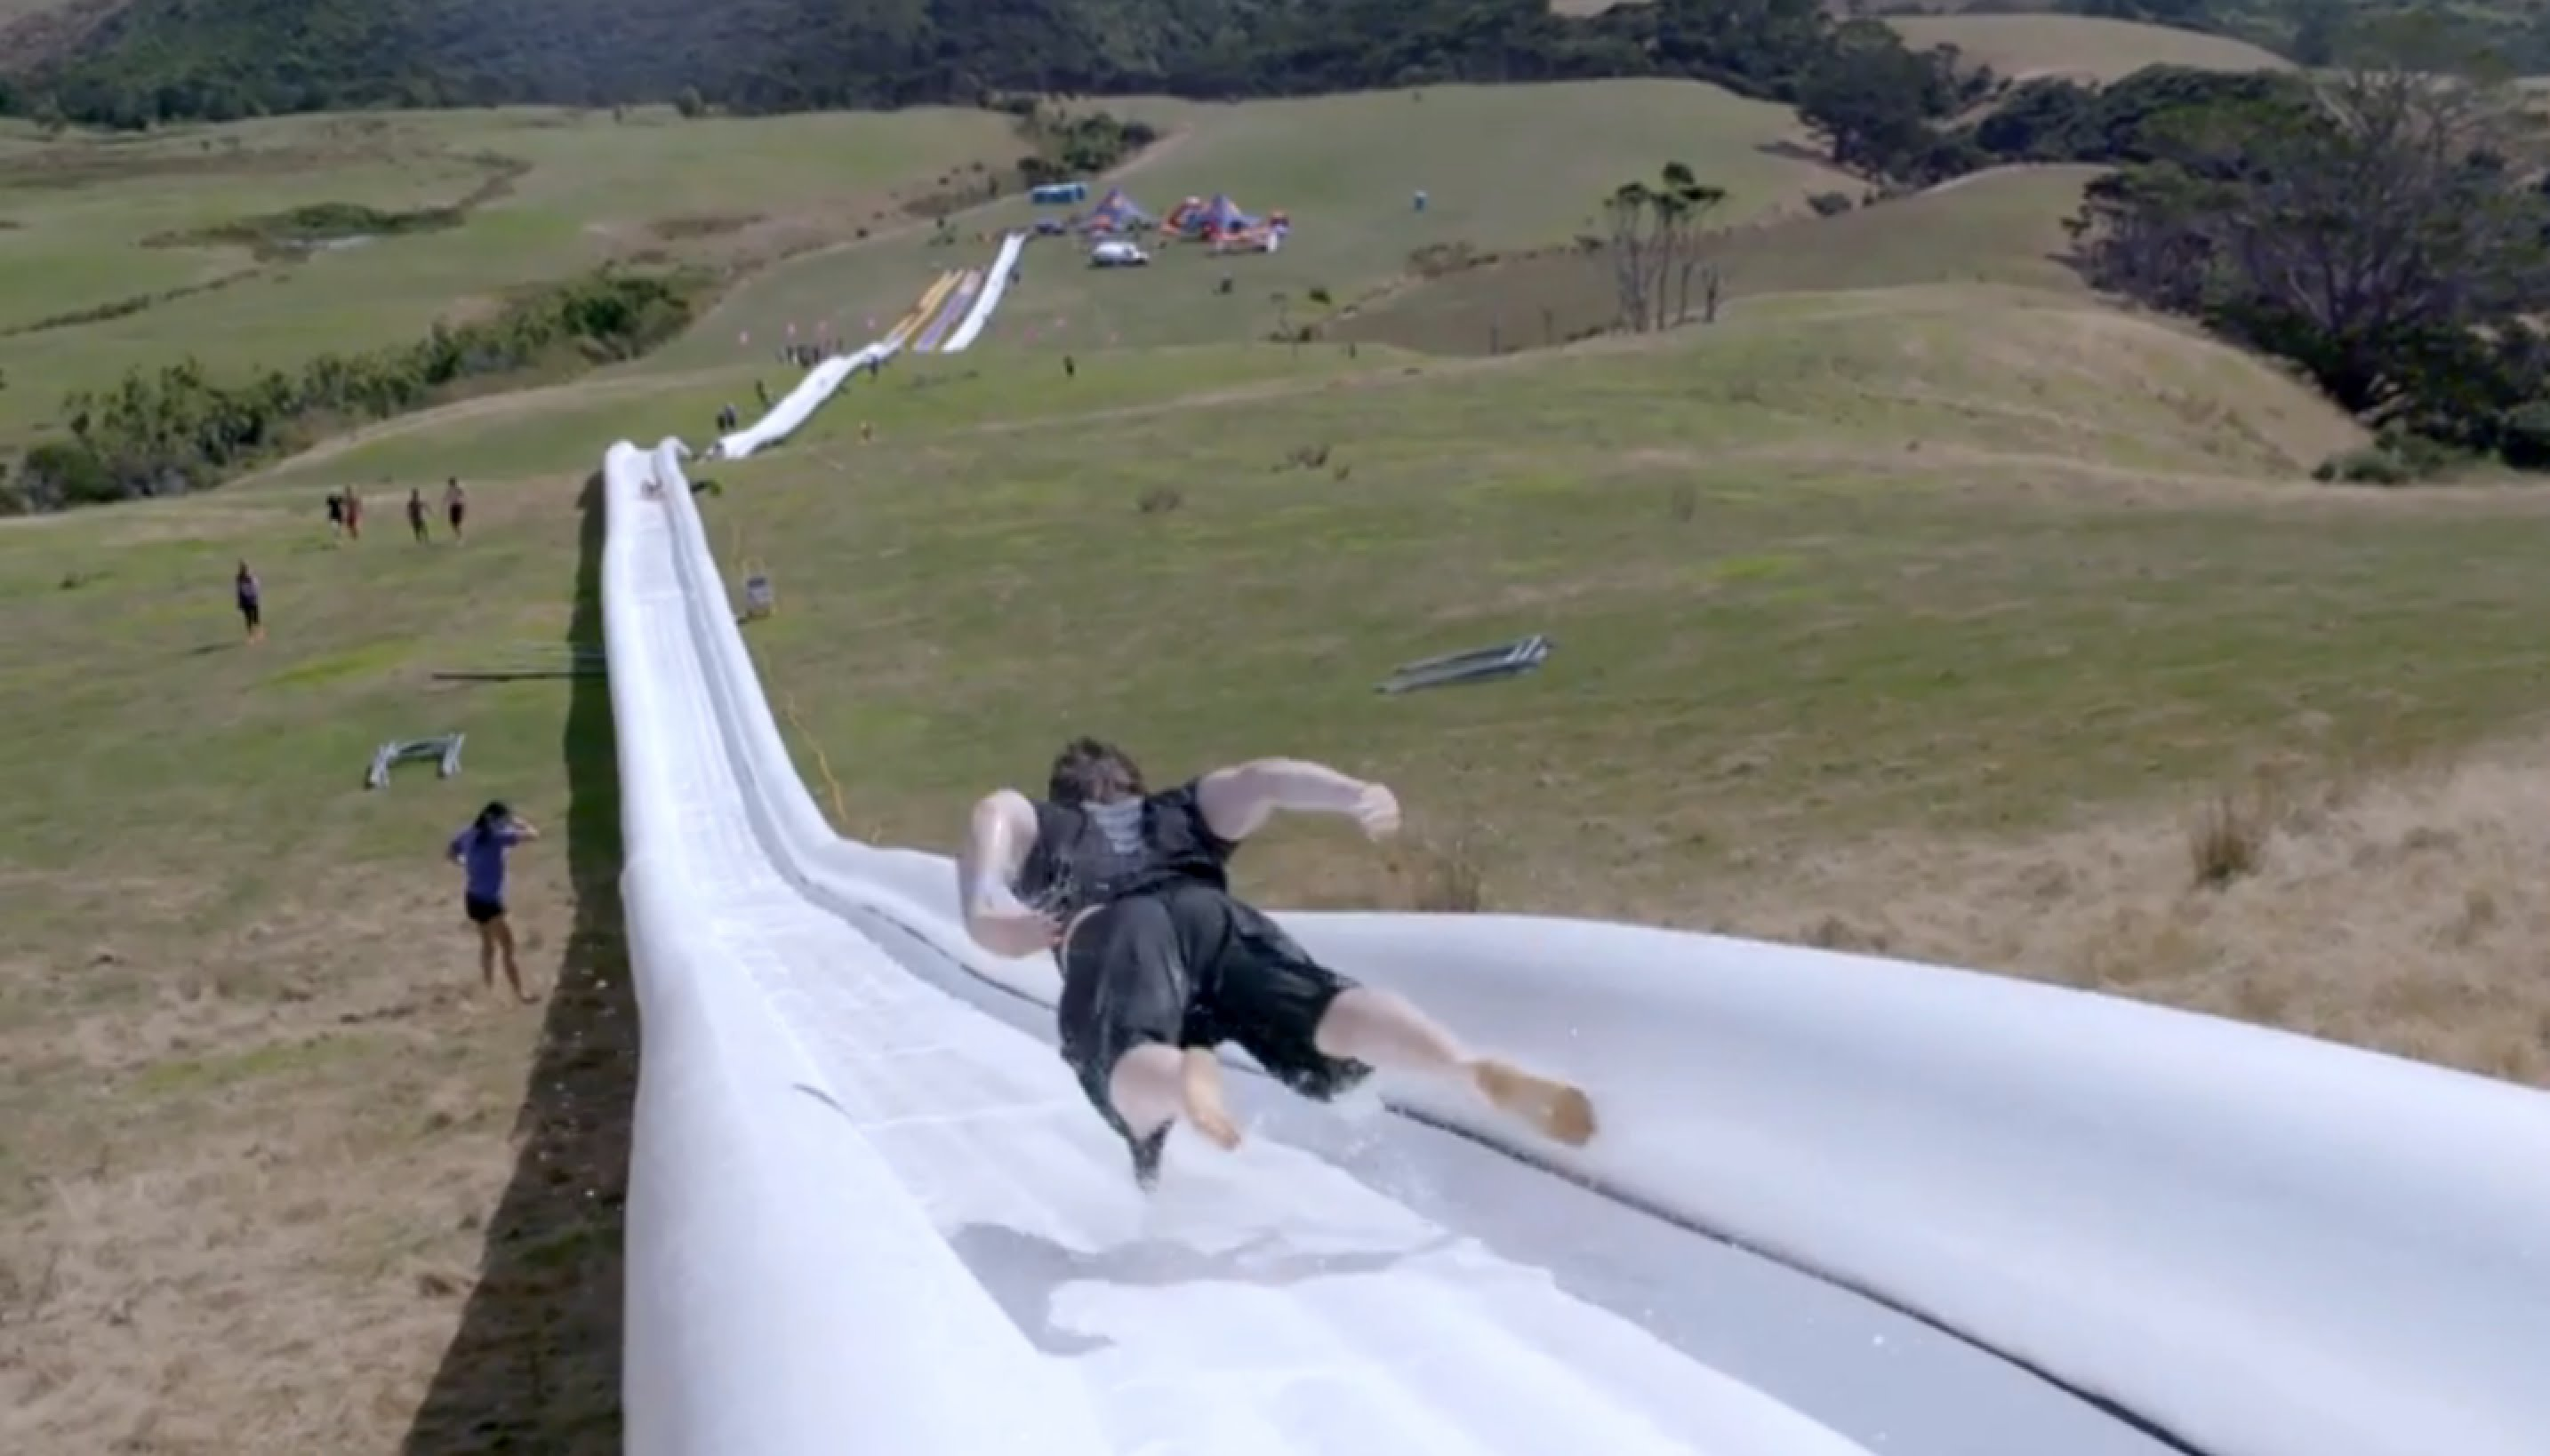 The World's Longest Waterslide